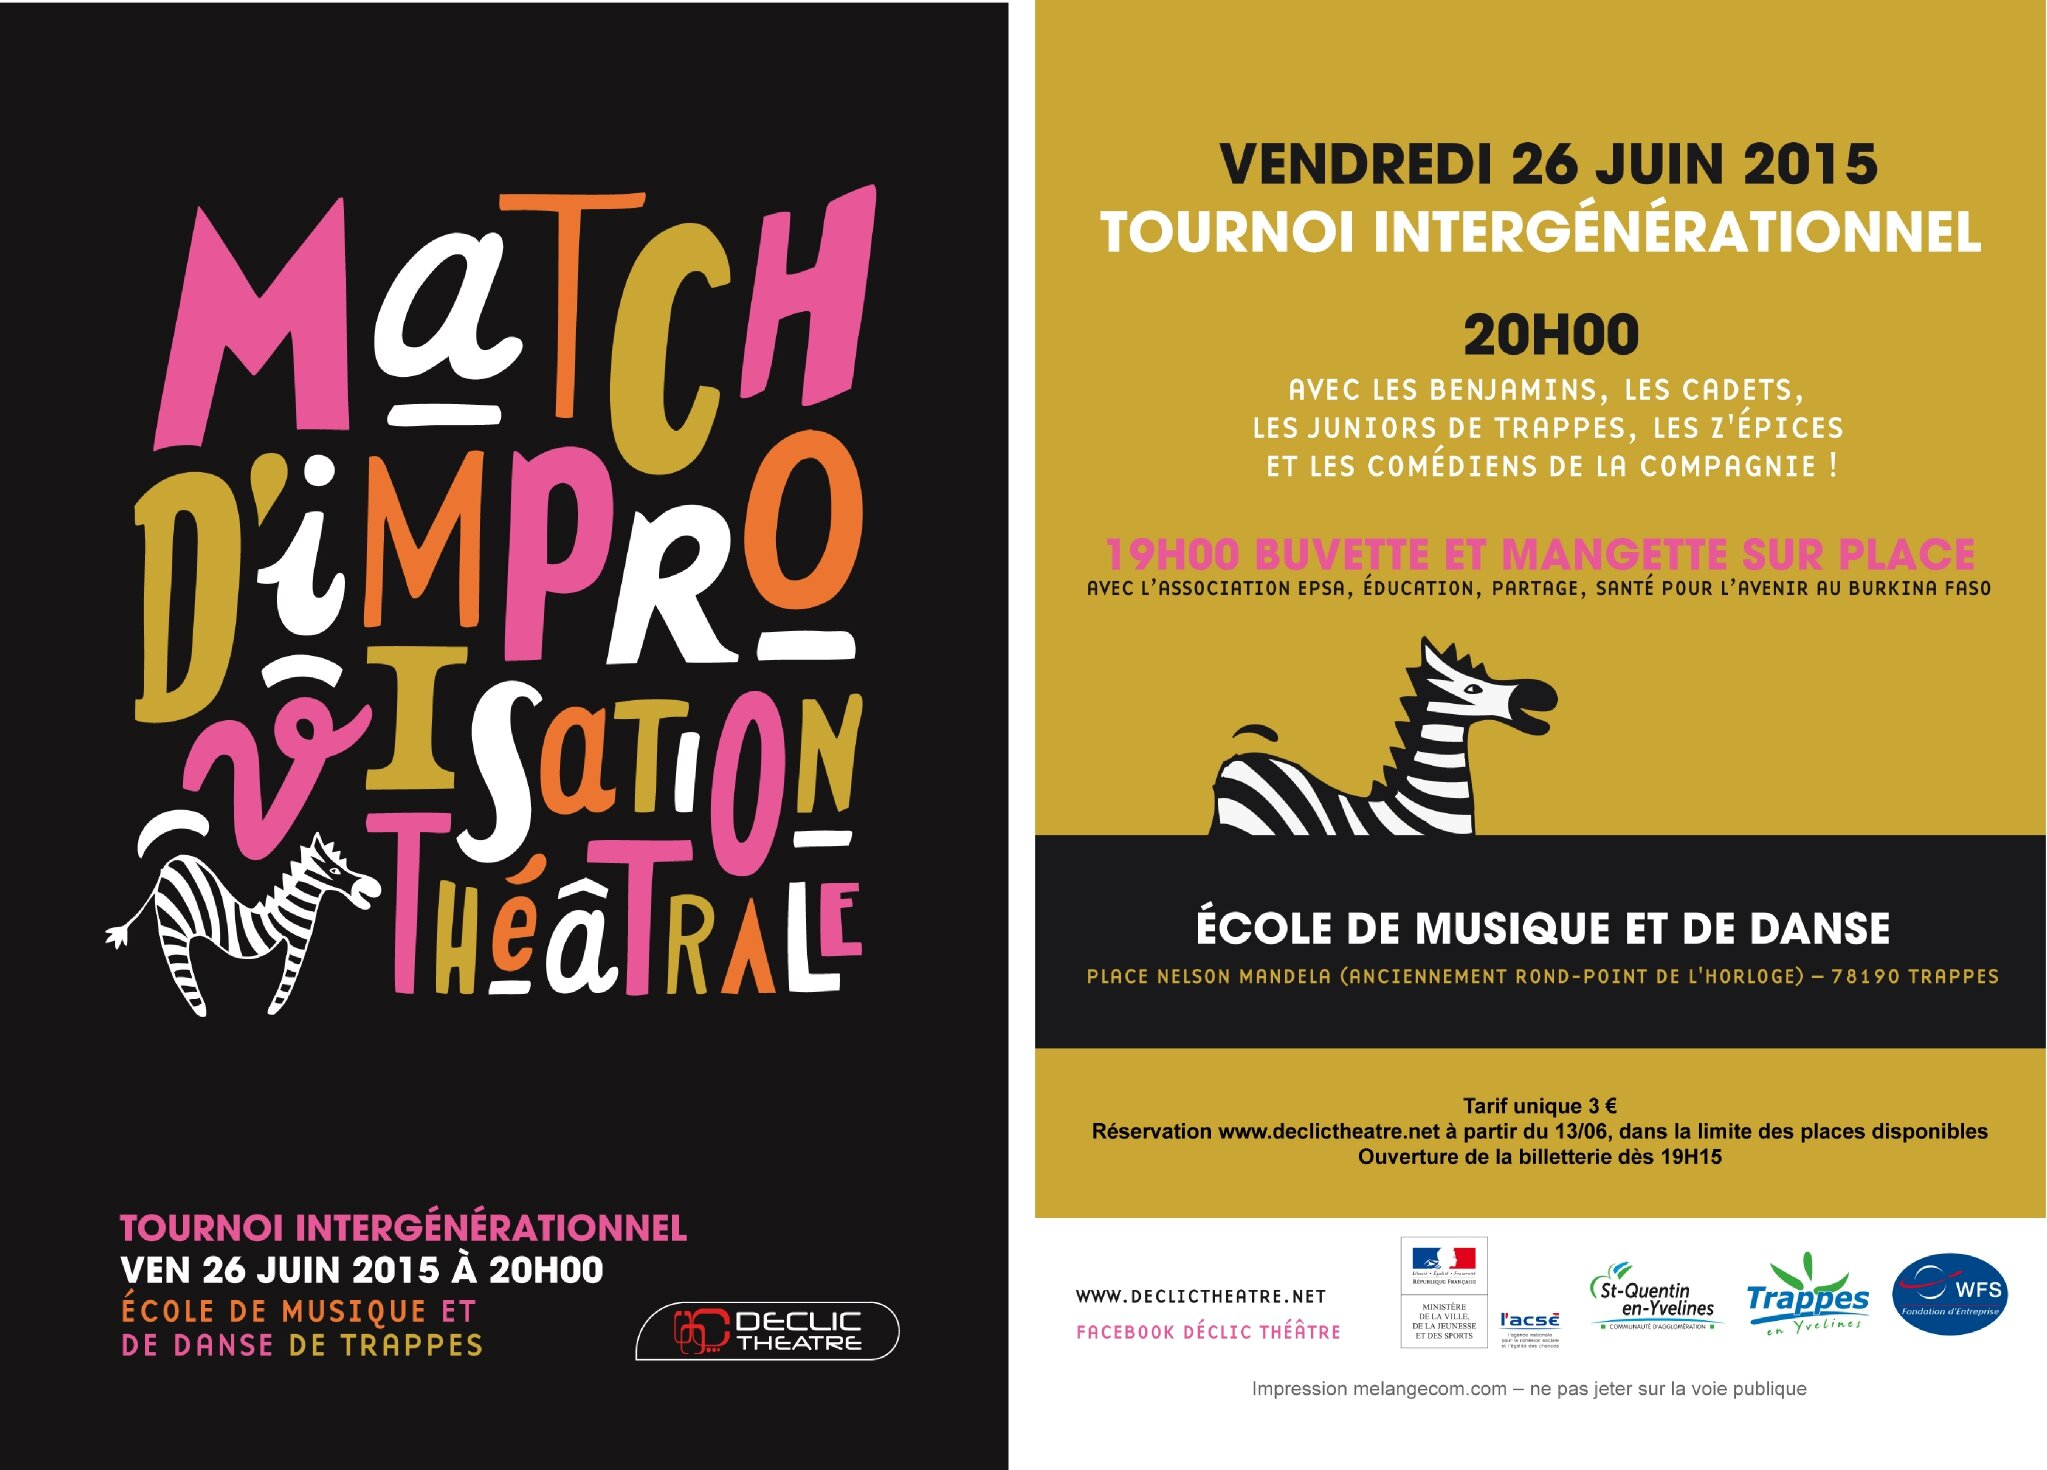 declic-theatre-tract-tournoi-intergenerationnel-26062015